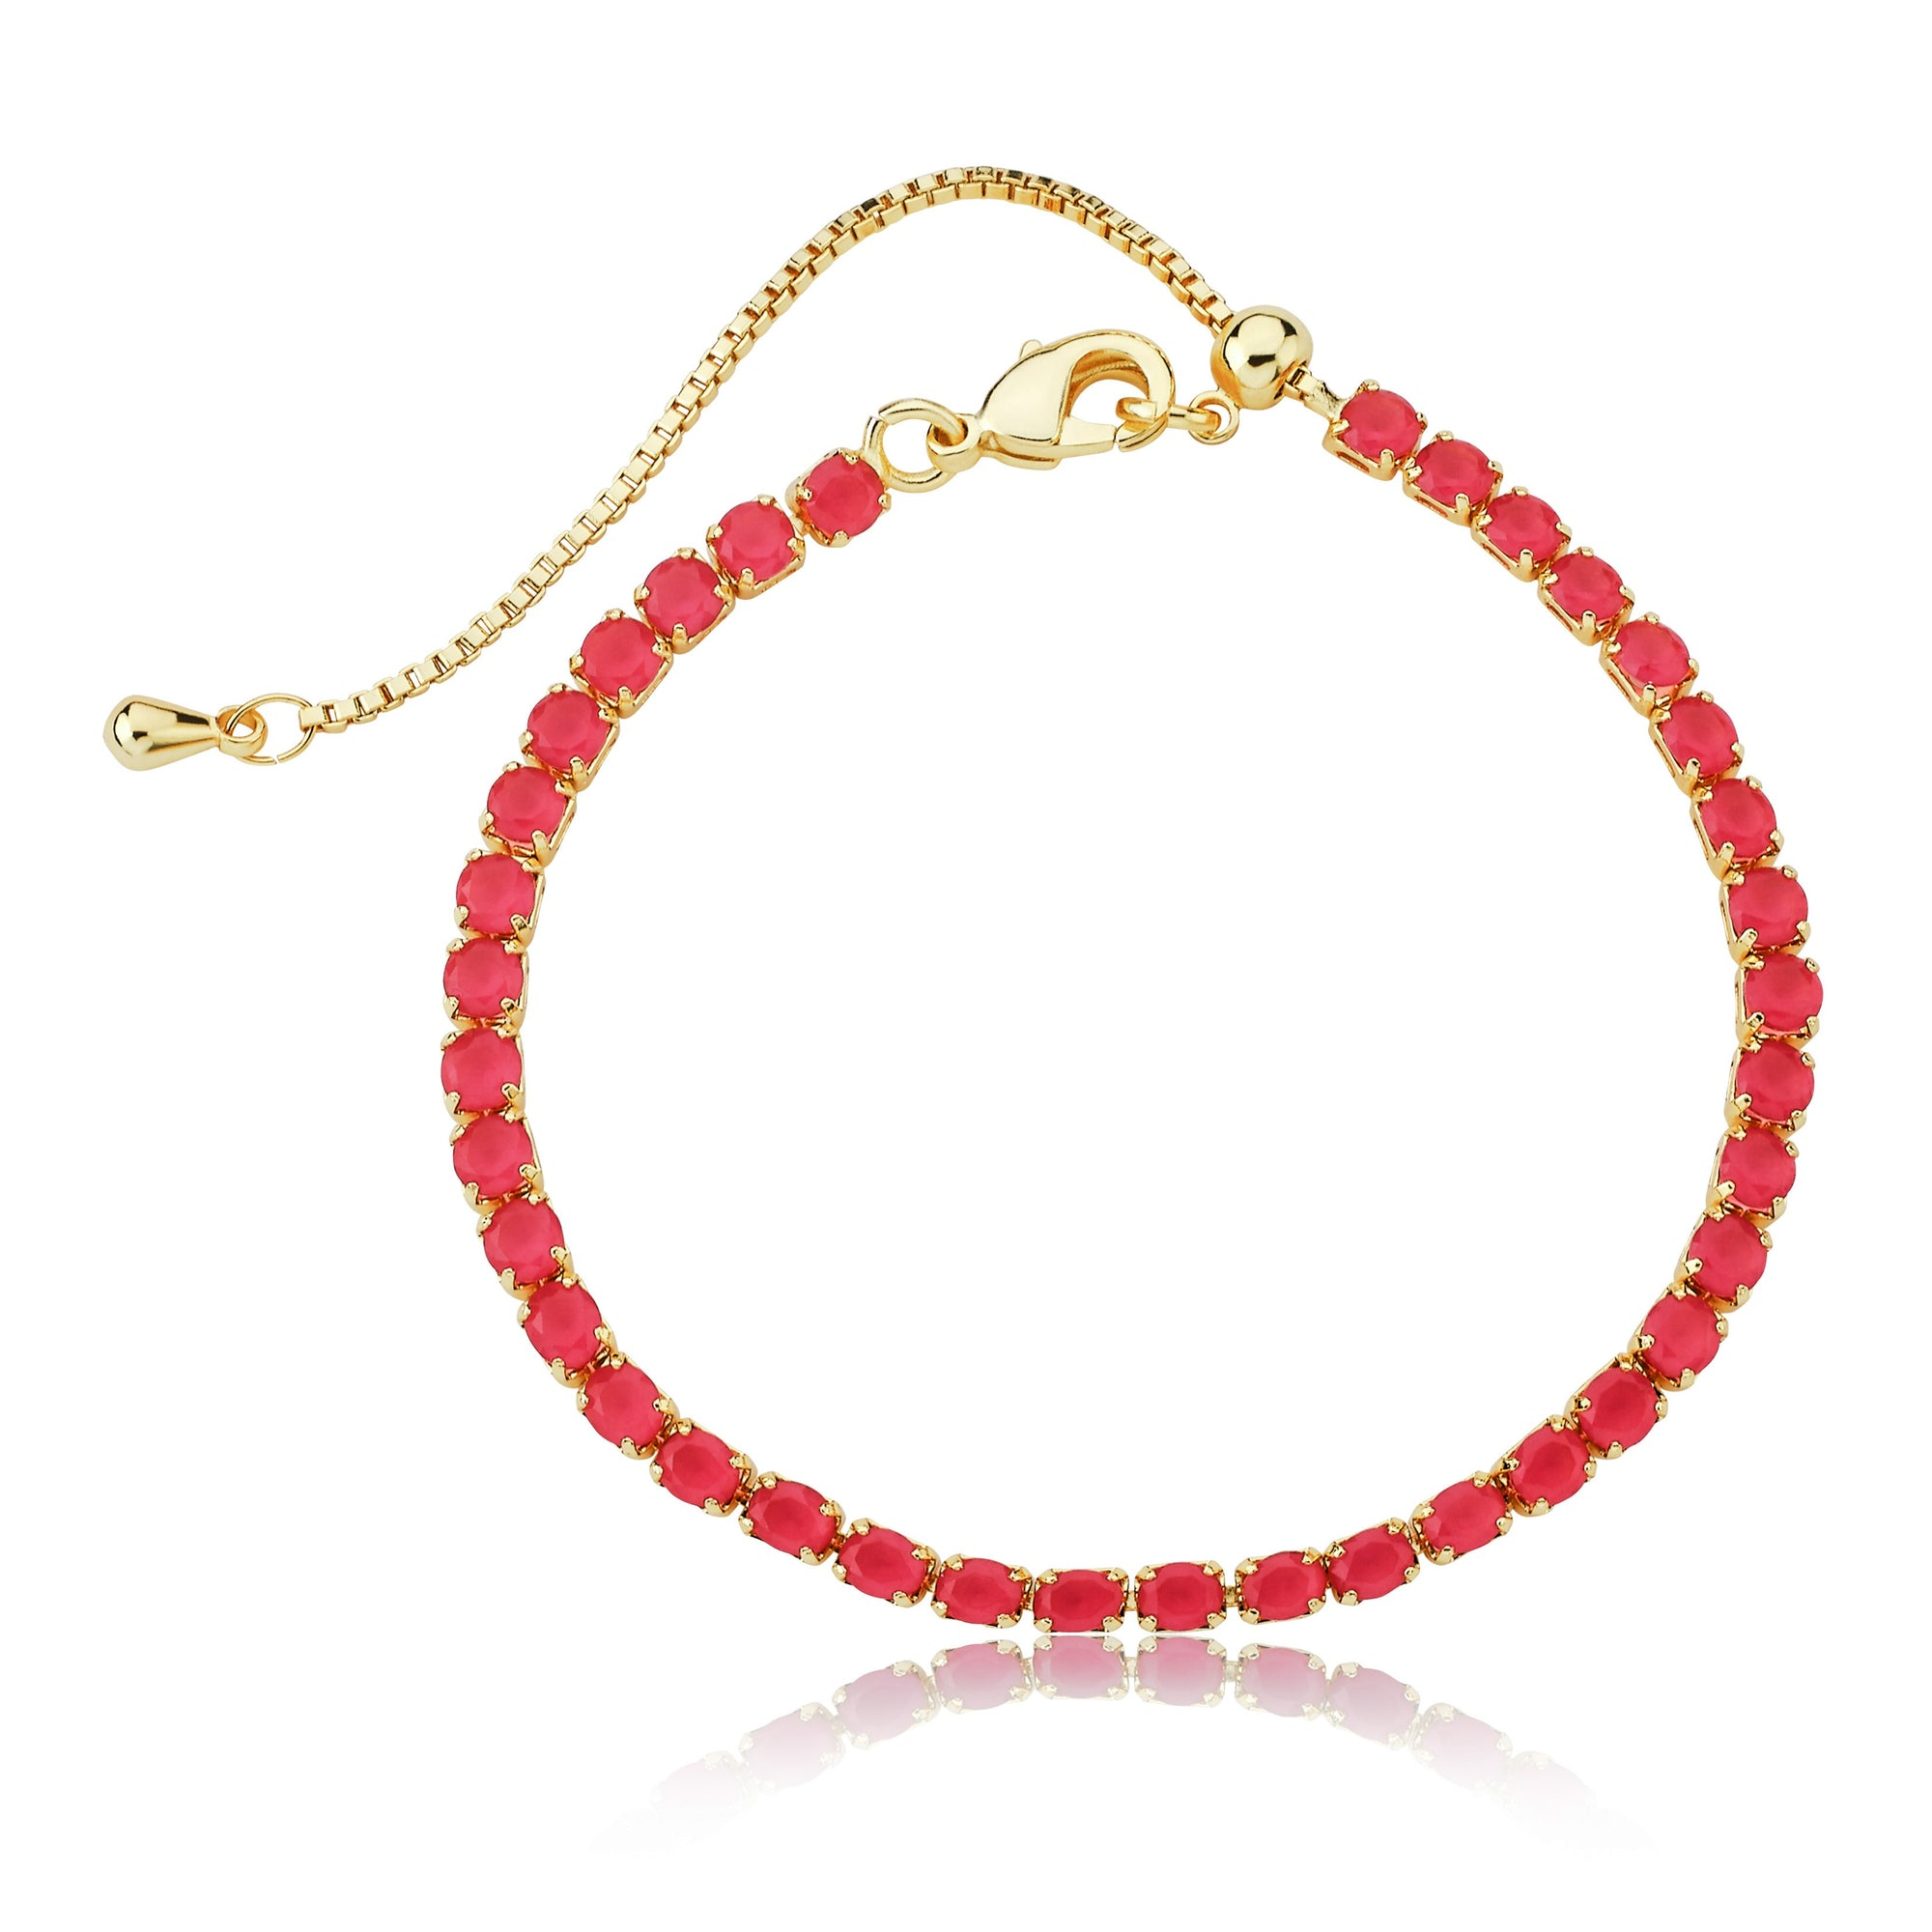 Twin Star 14K Gold Plated Hot Pink Tennis Bracelet